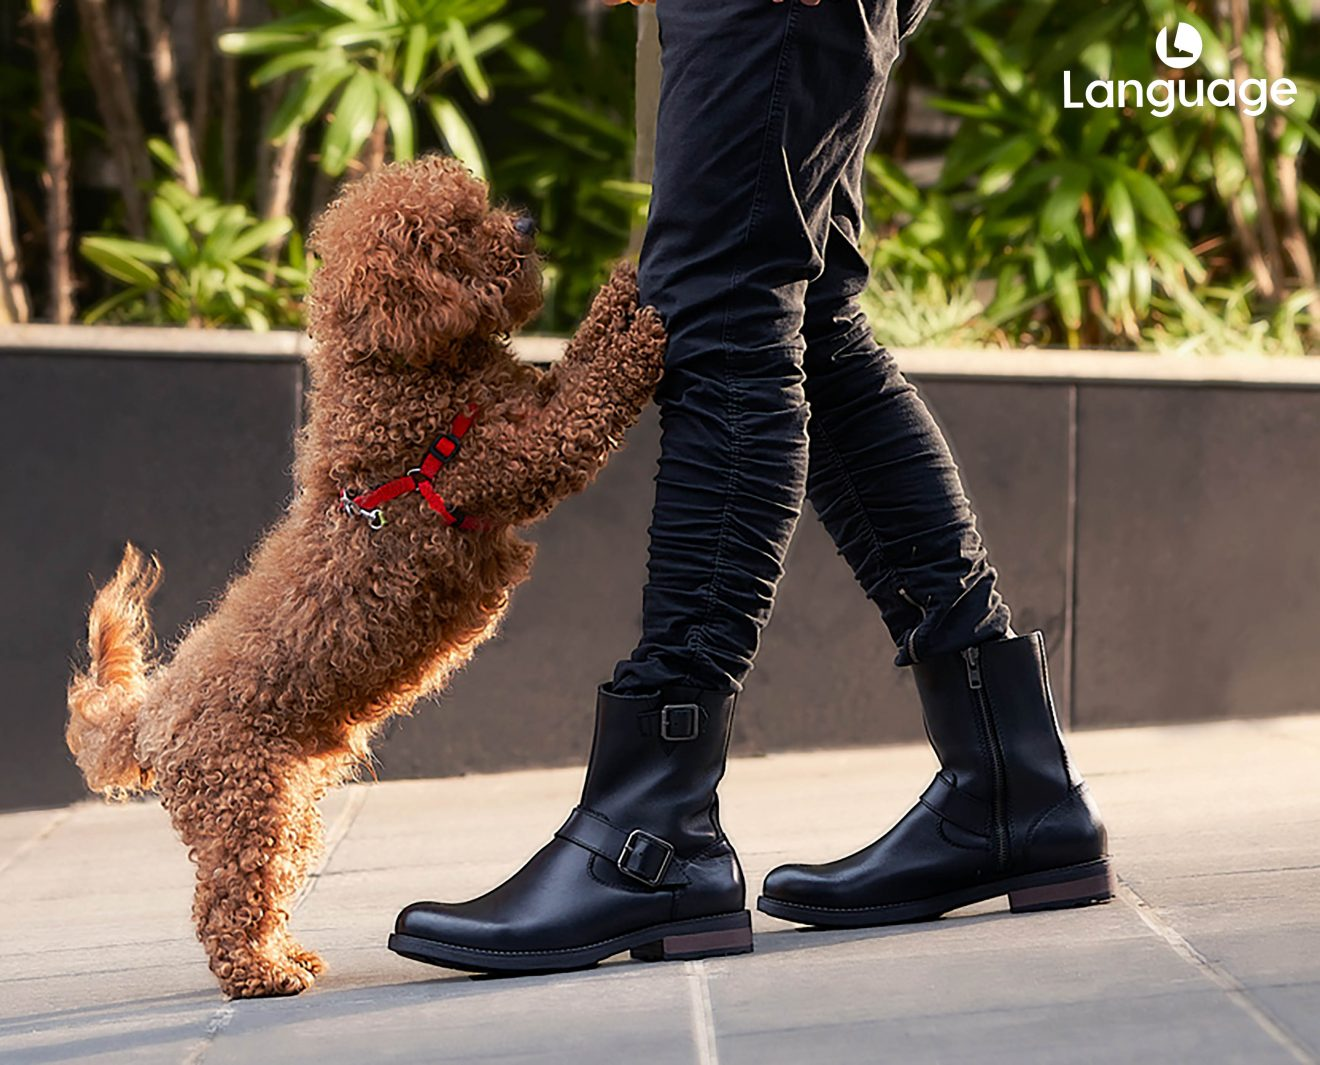 Premium Leather Boots from Language Shoes